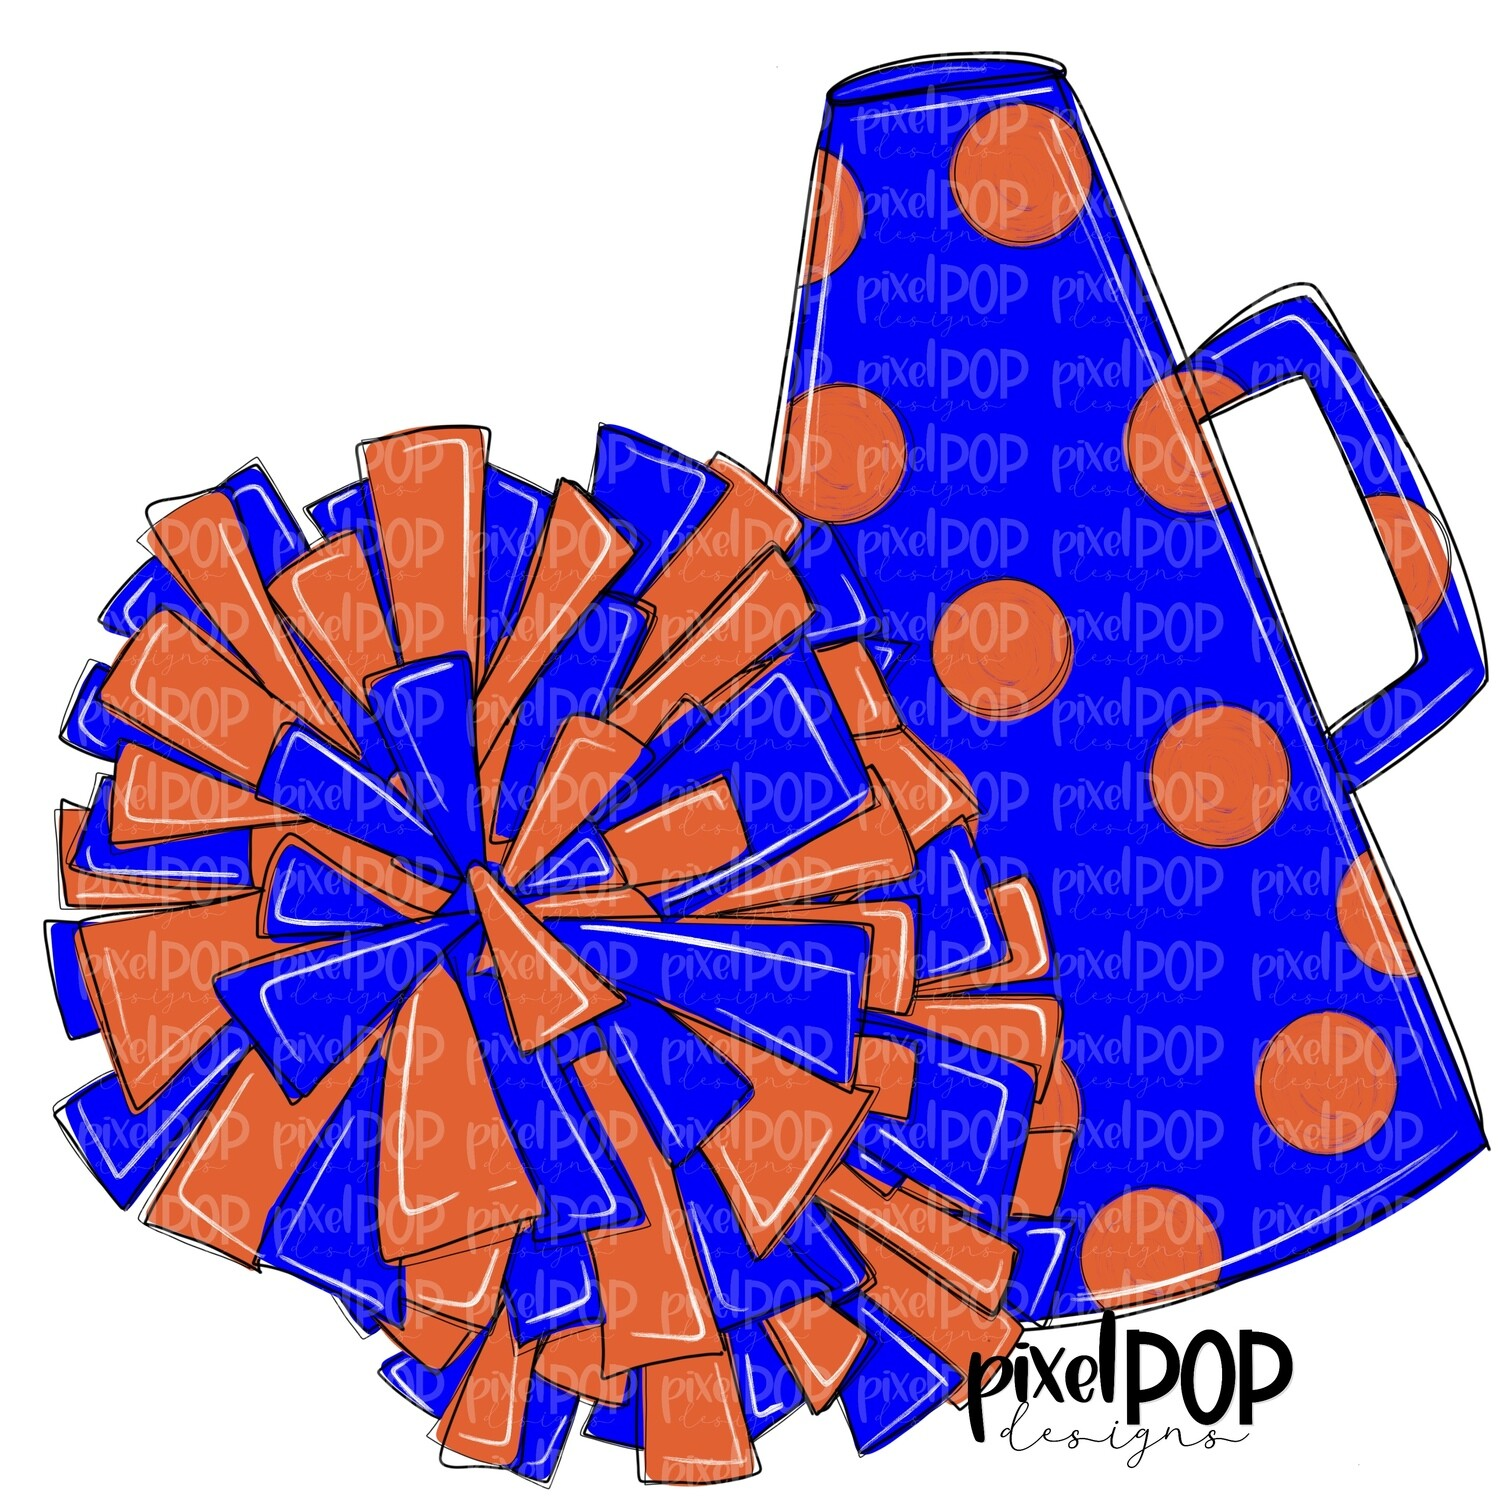 Cheerleading Megaphone and Poms Blue and Orange PNG   Cheerleading   Cheer Design   Cheer Art   Cheer Blank   Sports Art